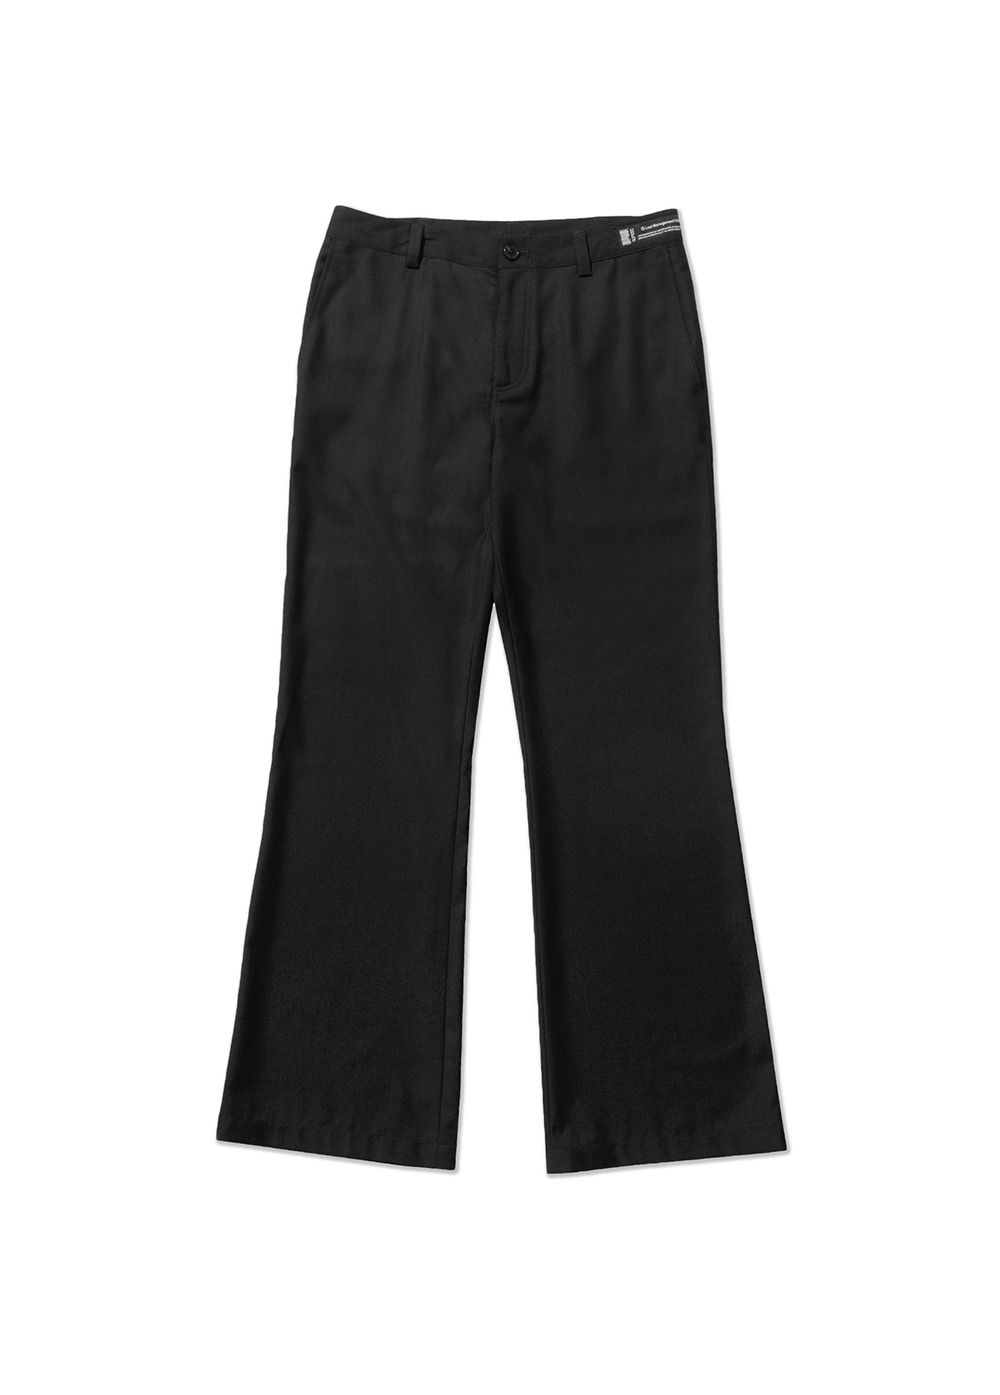 LMC GANG SUIT WIDE REG PANTS black